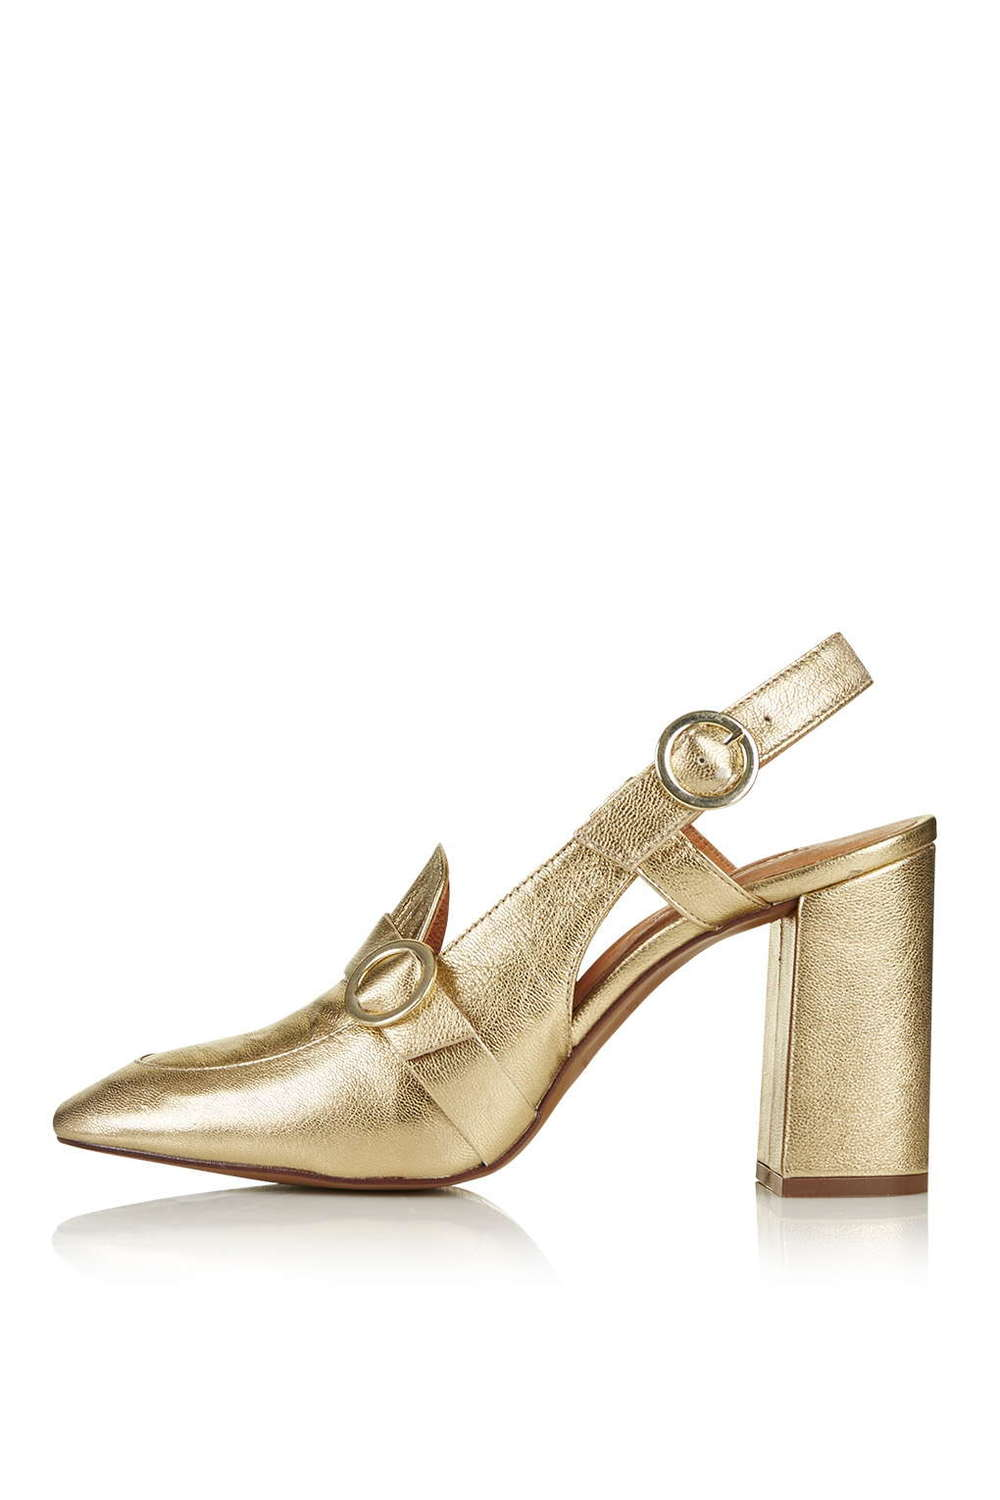 GINA Slingback Shoes. Topshop. $130.